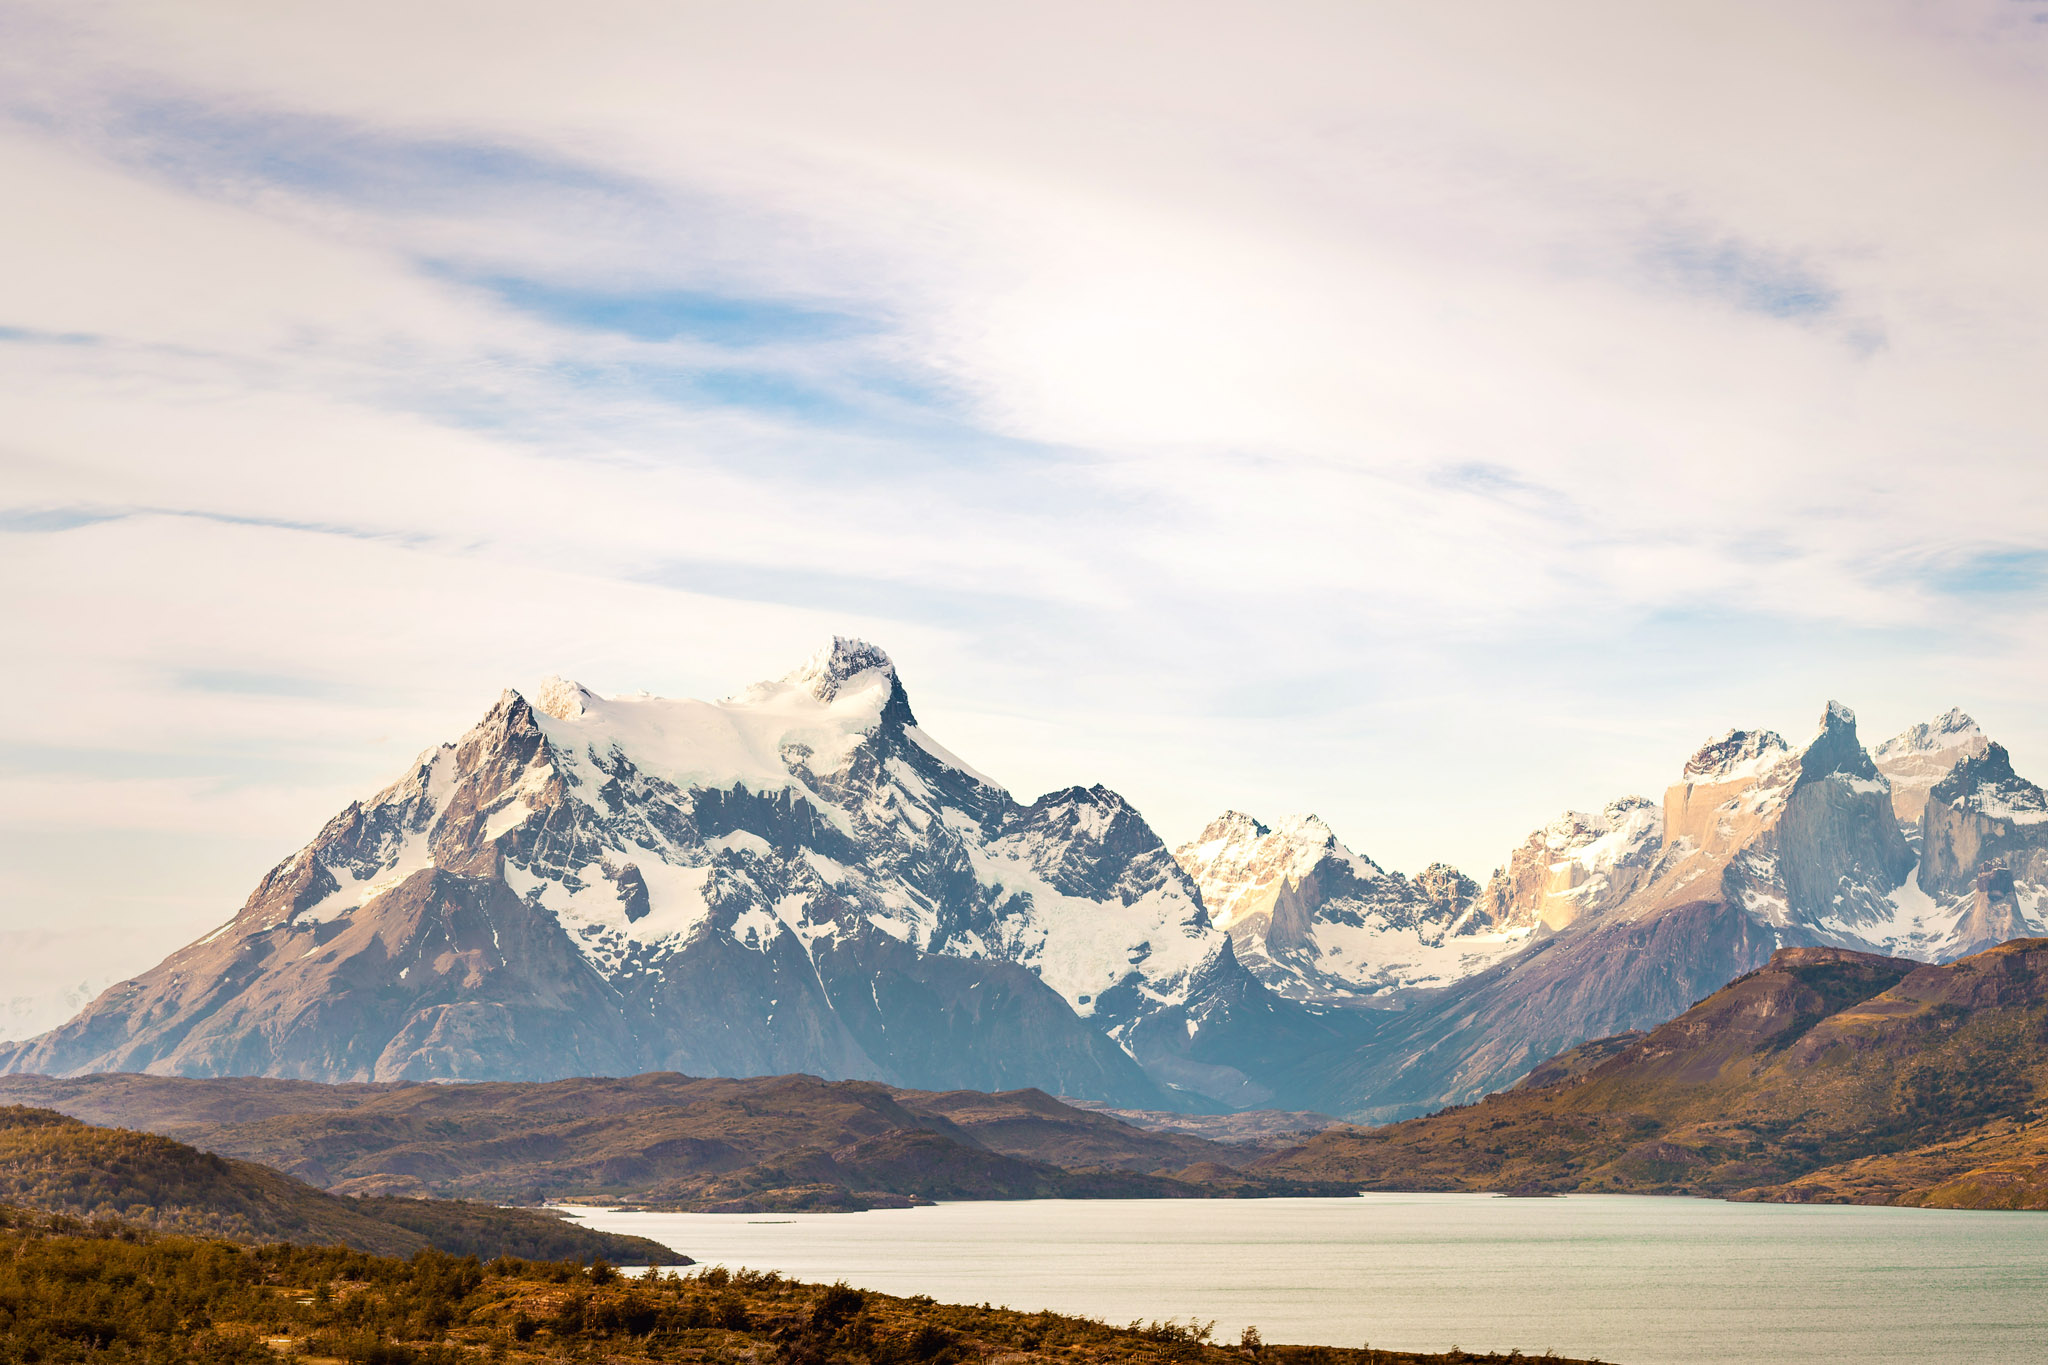 Wedding-Travellers-Overlanding-Destination-Wedding-Chile-Torres-del-Paine-Valle-Frances-Valley-French-lake-sunset-snow-ice-mountain-glacial-shore-coast